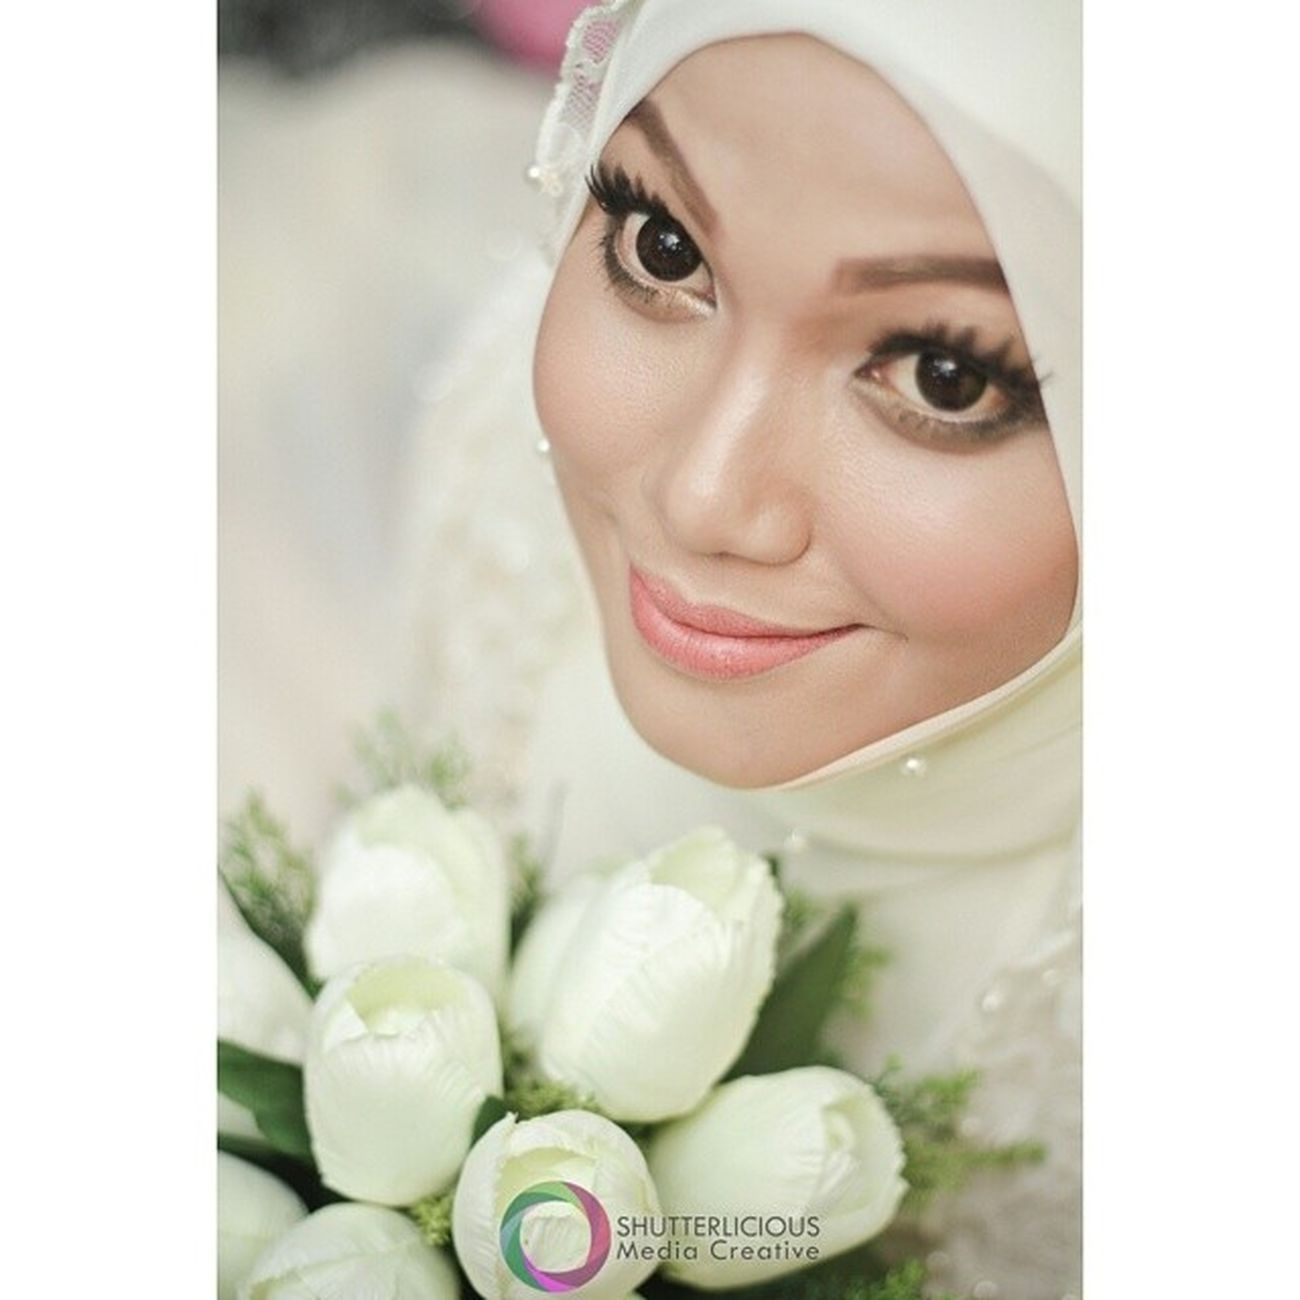 DSNikah Shutterlicious Work Wedding igersmalaysia igers Photog portrait portraiture marvelous cute shoutout shoot snap follow girls happiness love likes